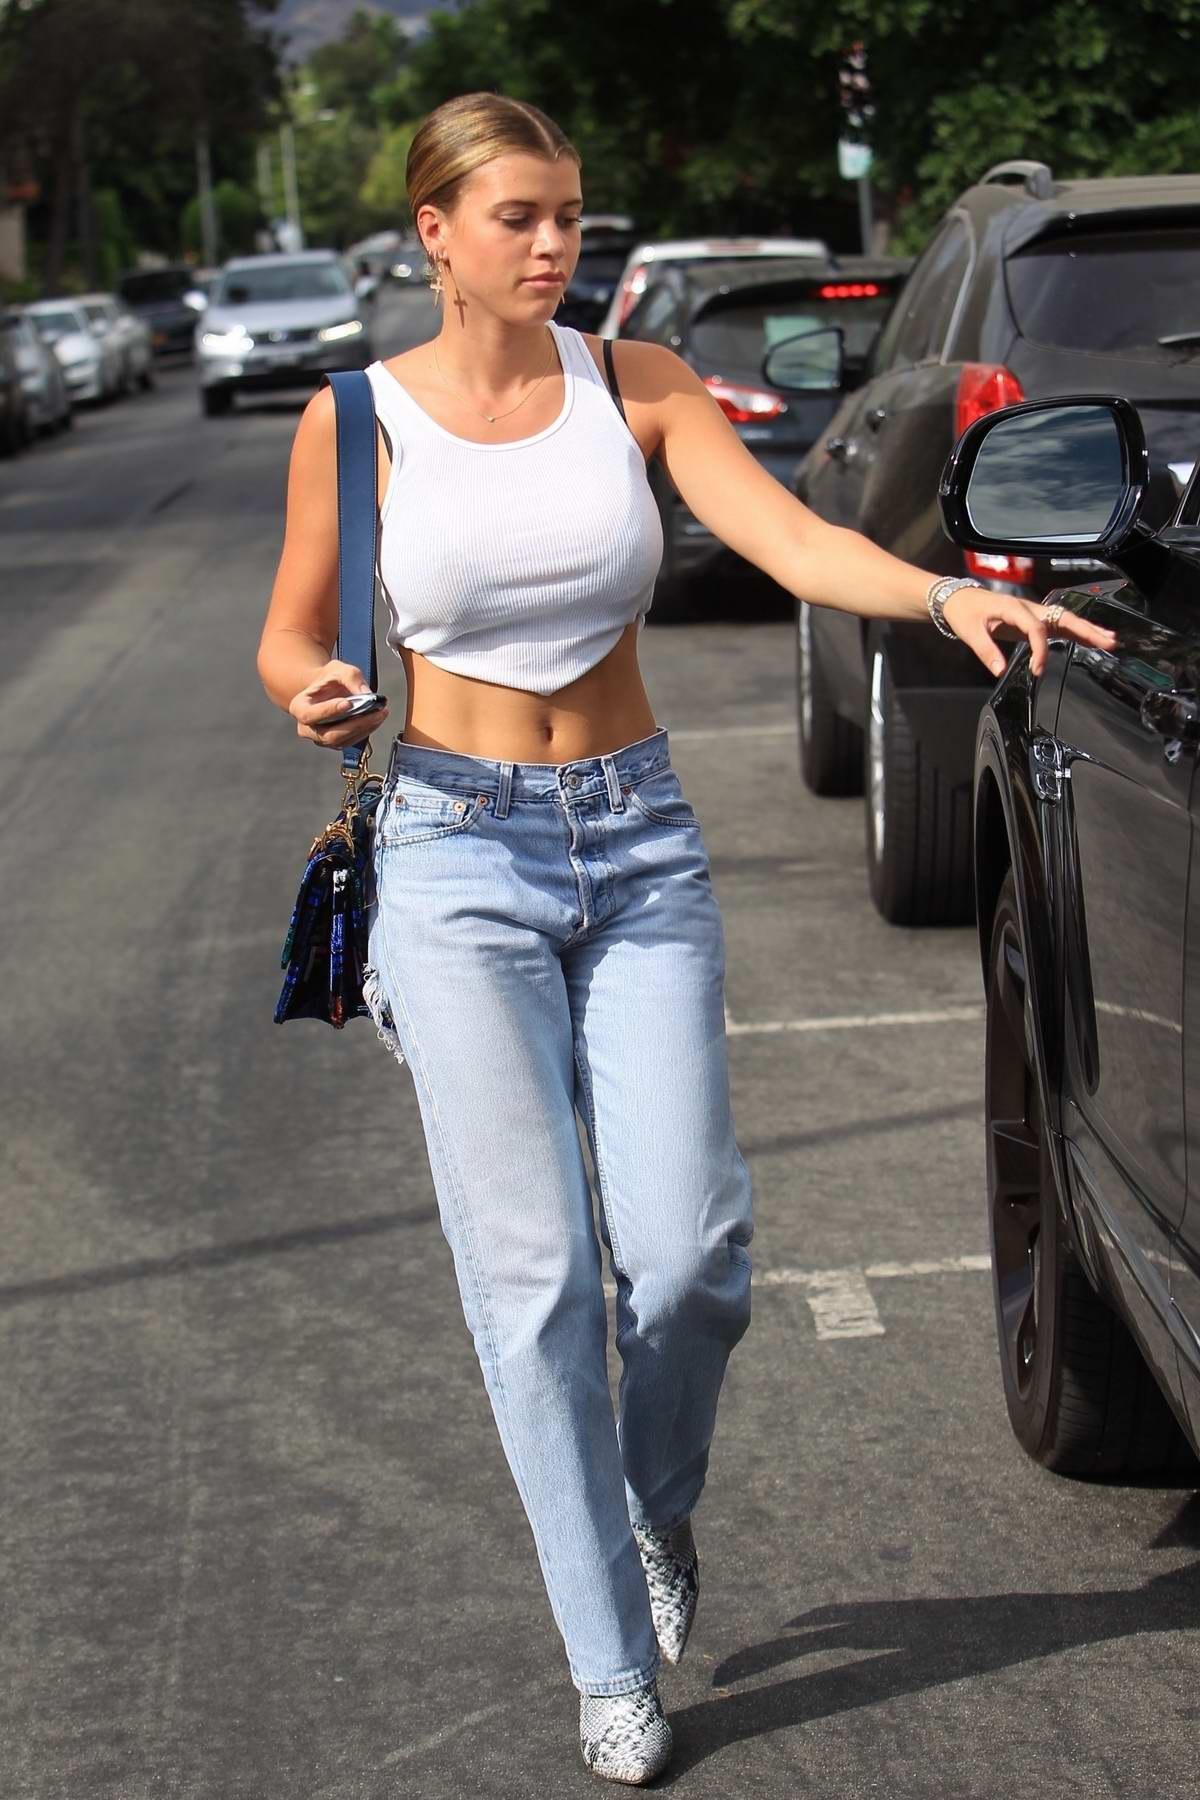 Sofia Richie spotted in a cropped white tank top and jeans while out for shopping in Hollywood, Los Angeles